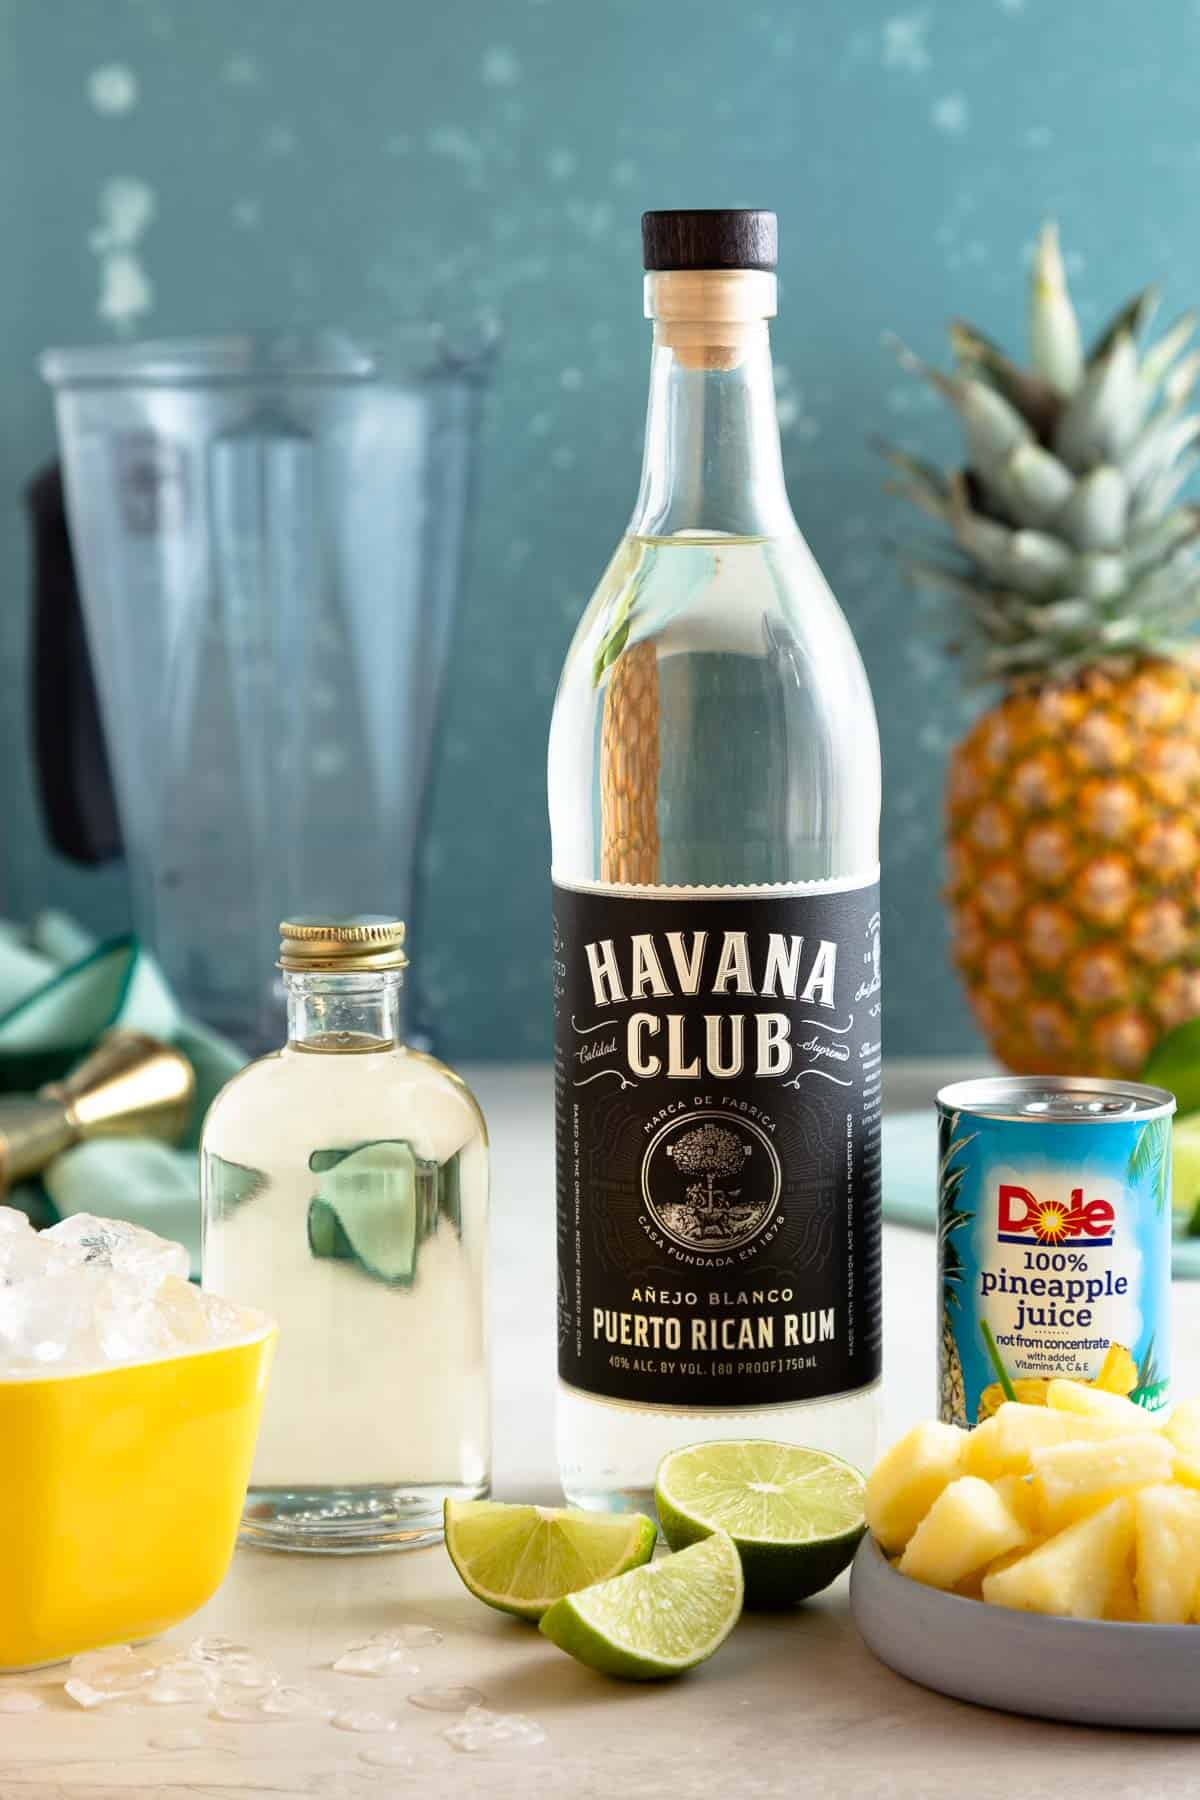 bottles of rum, syrup, and pineapple juice next to pineapple chunks and lime